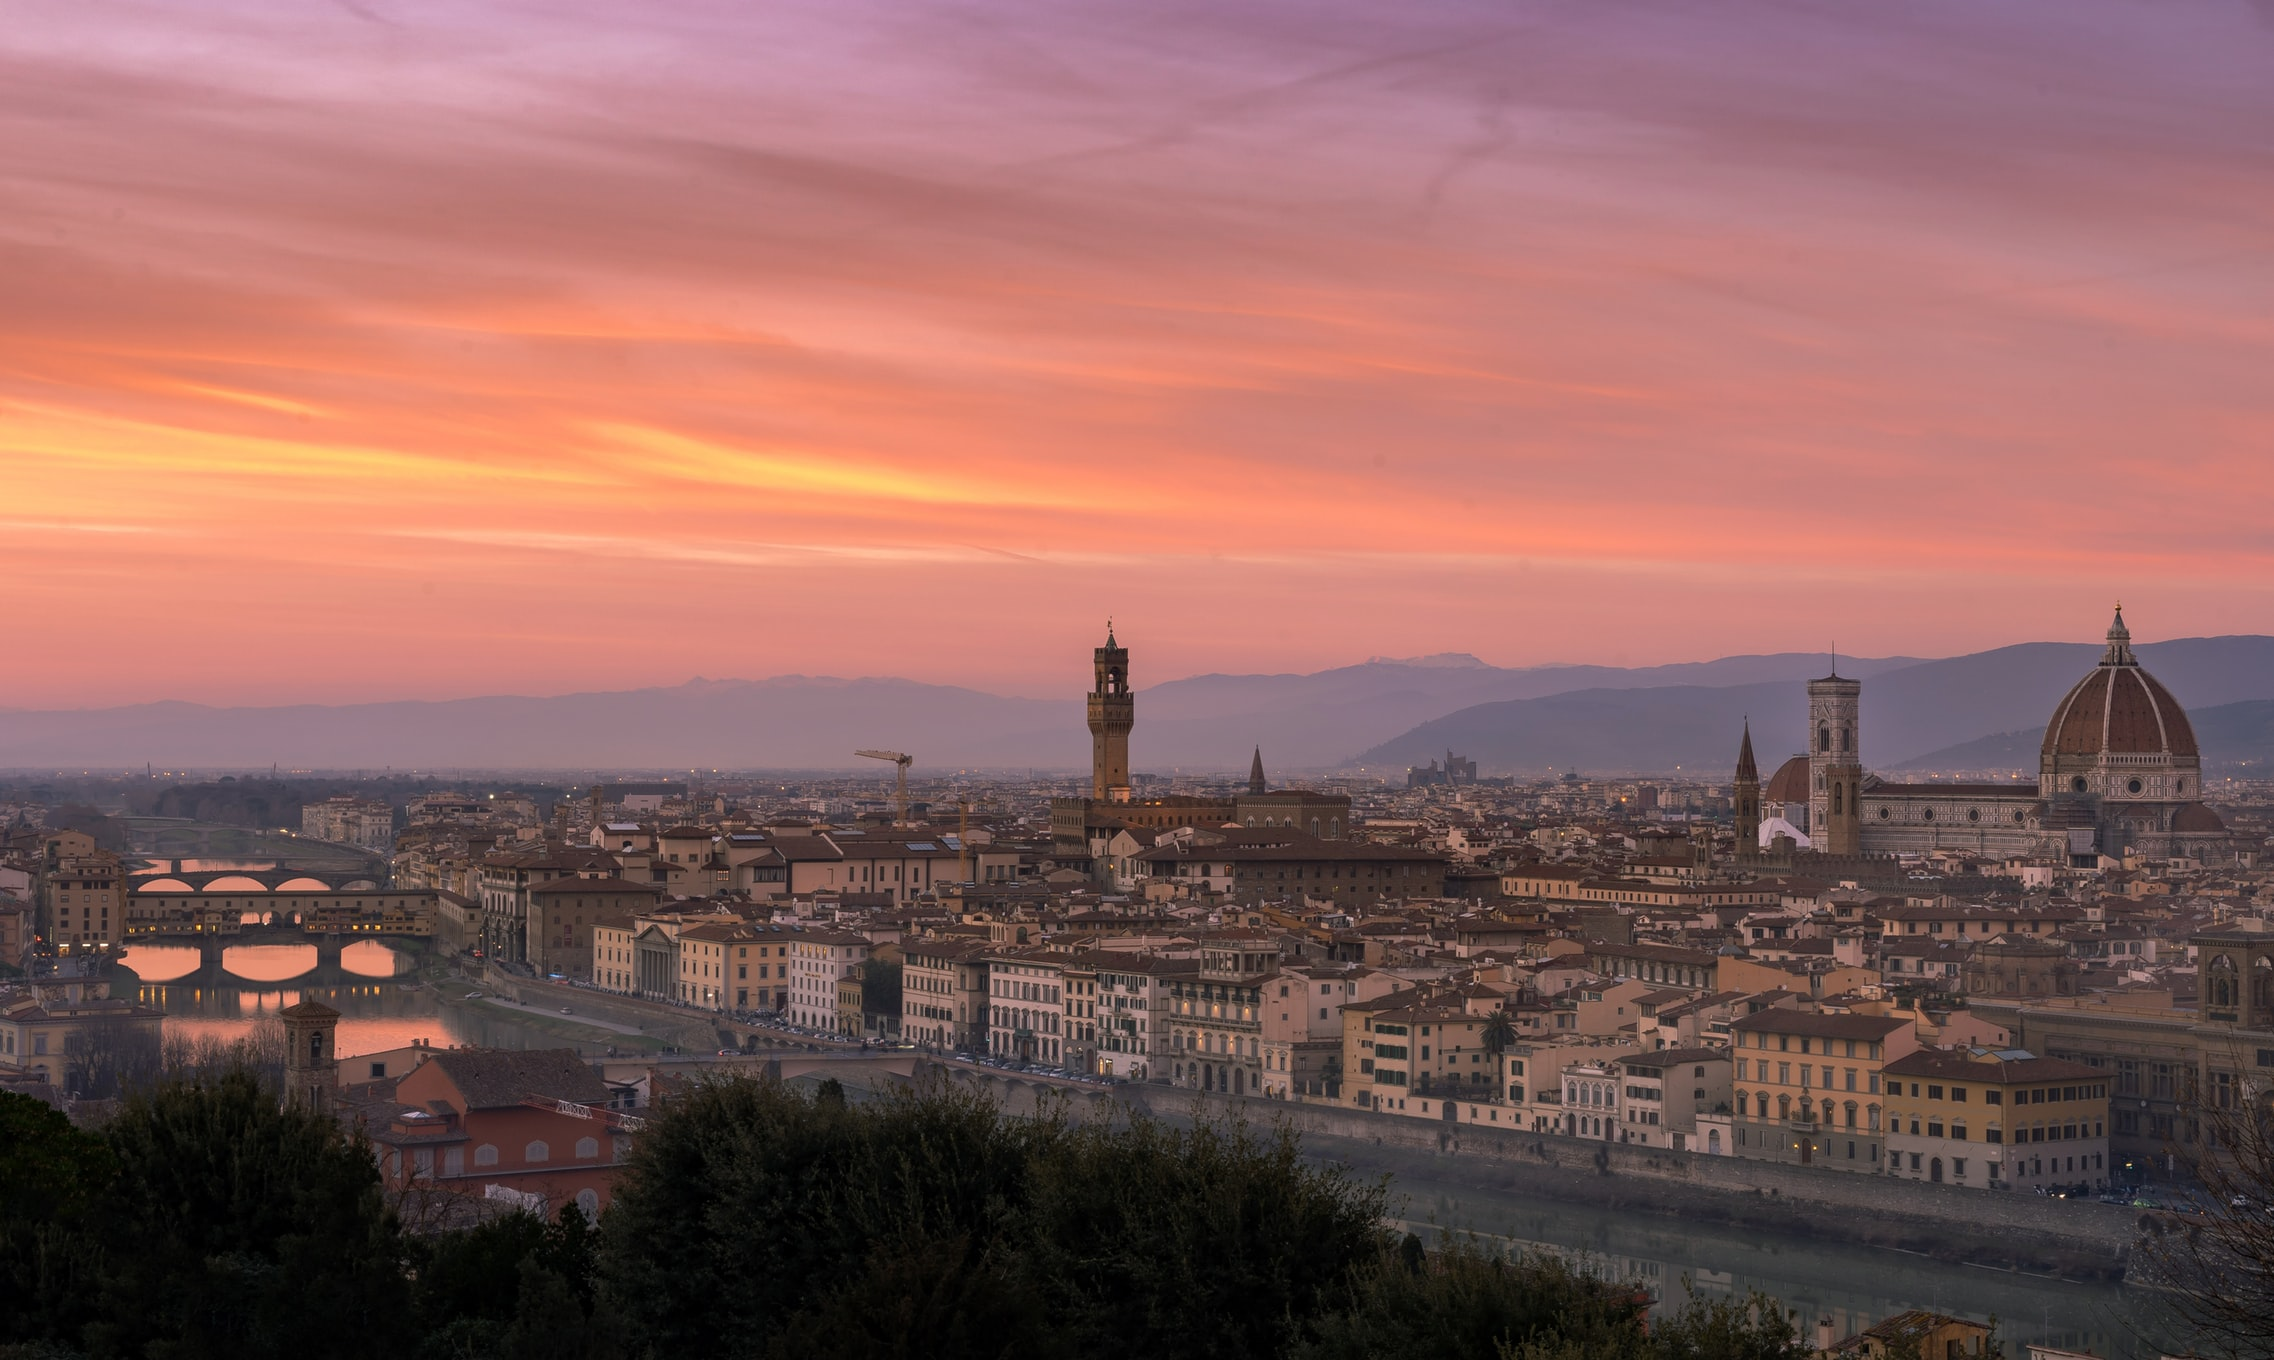 Piazzale Michelangelo panoramic view of Florence with bright orange and pink sunset sky